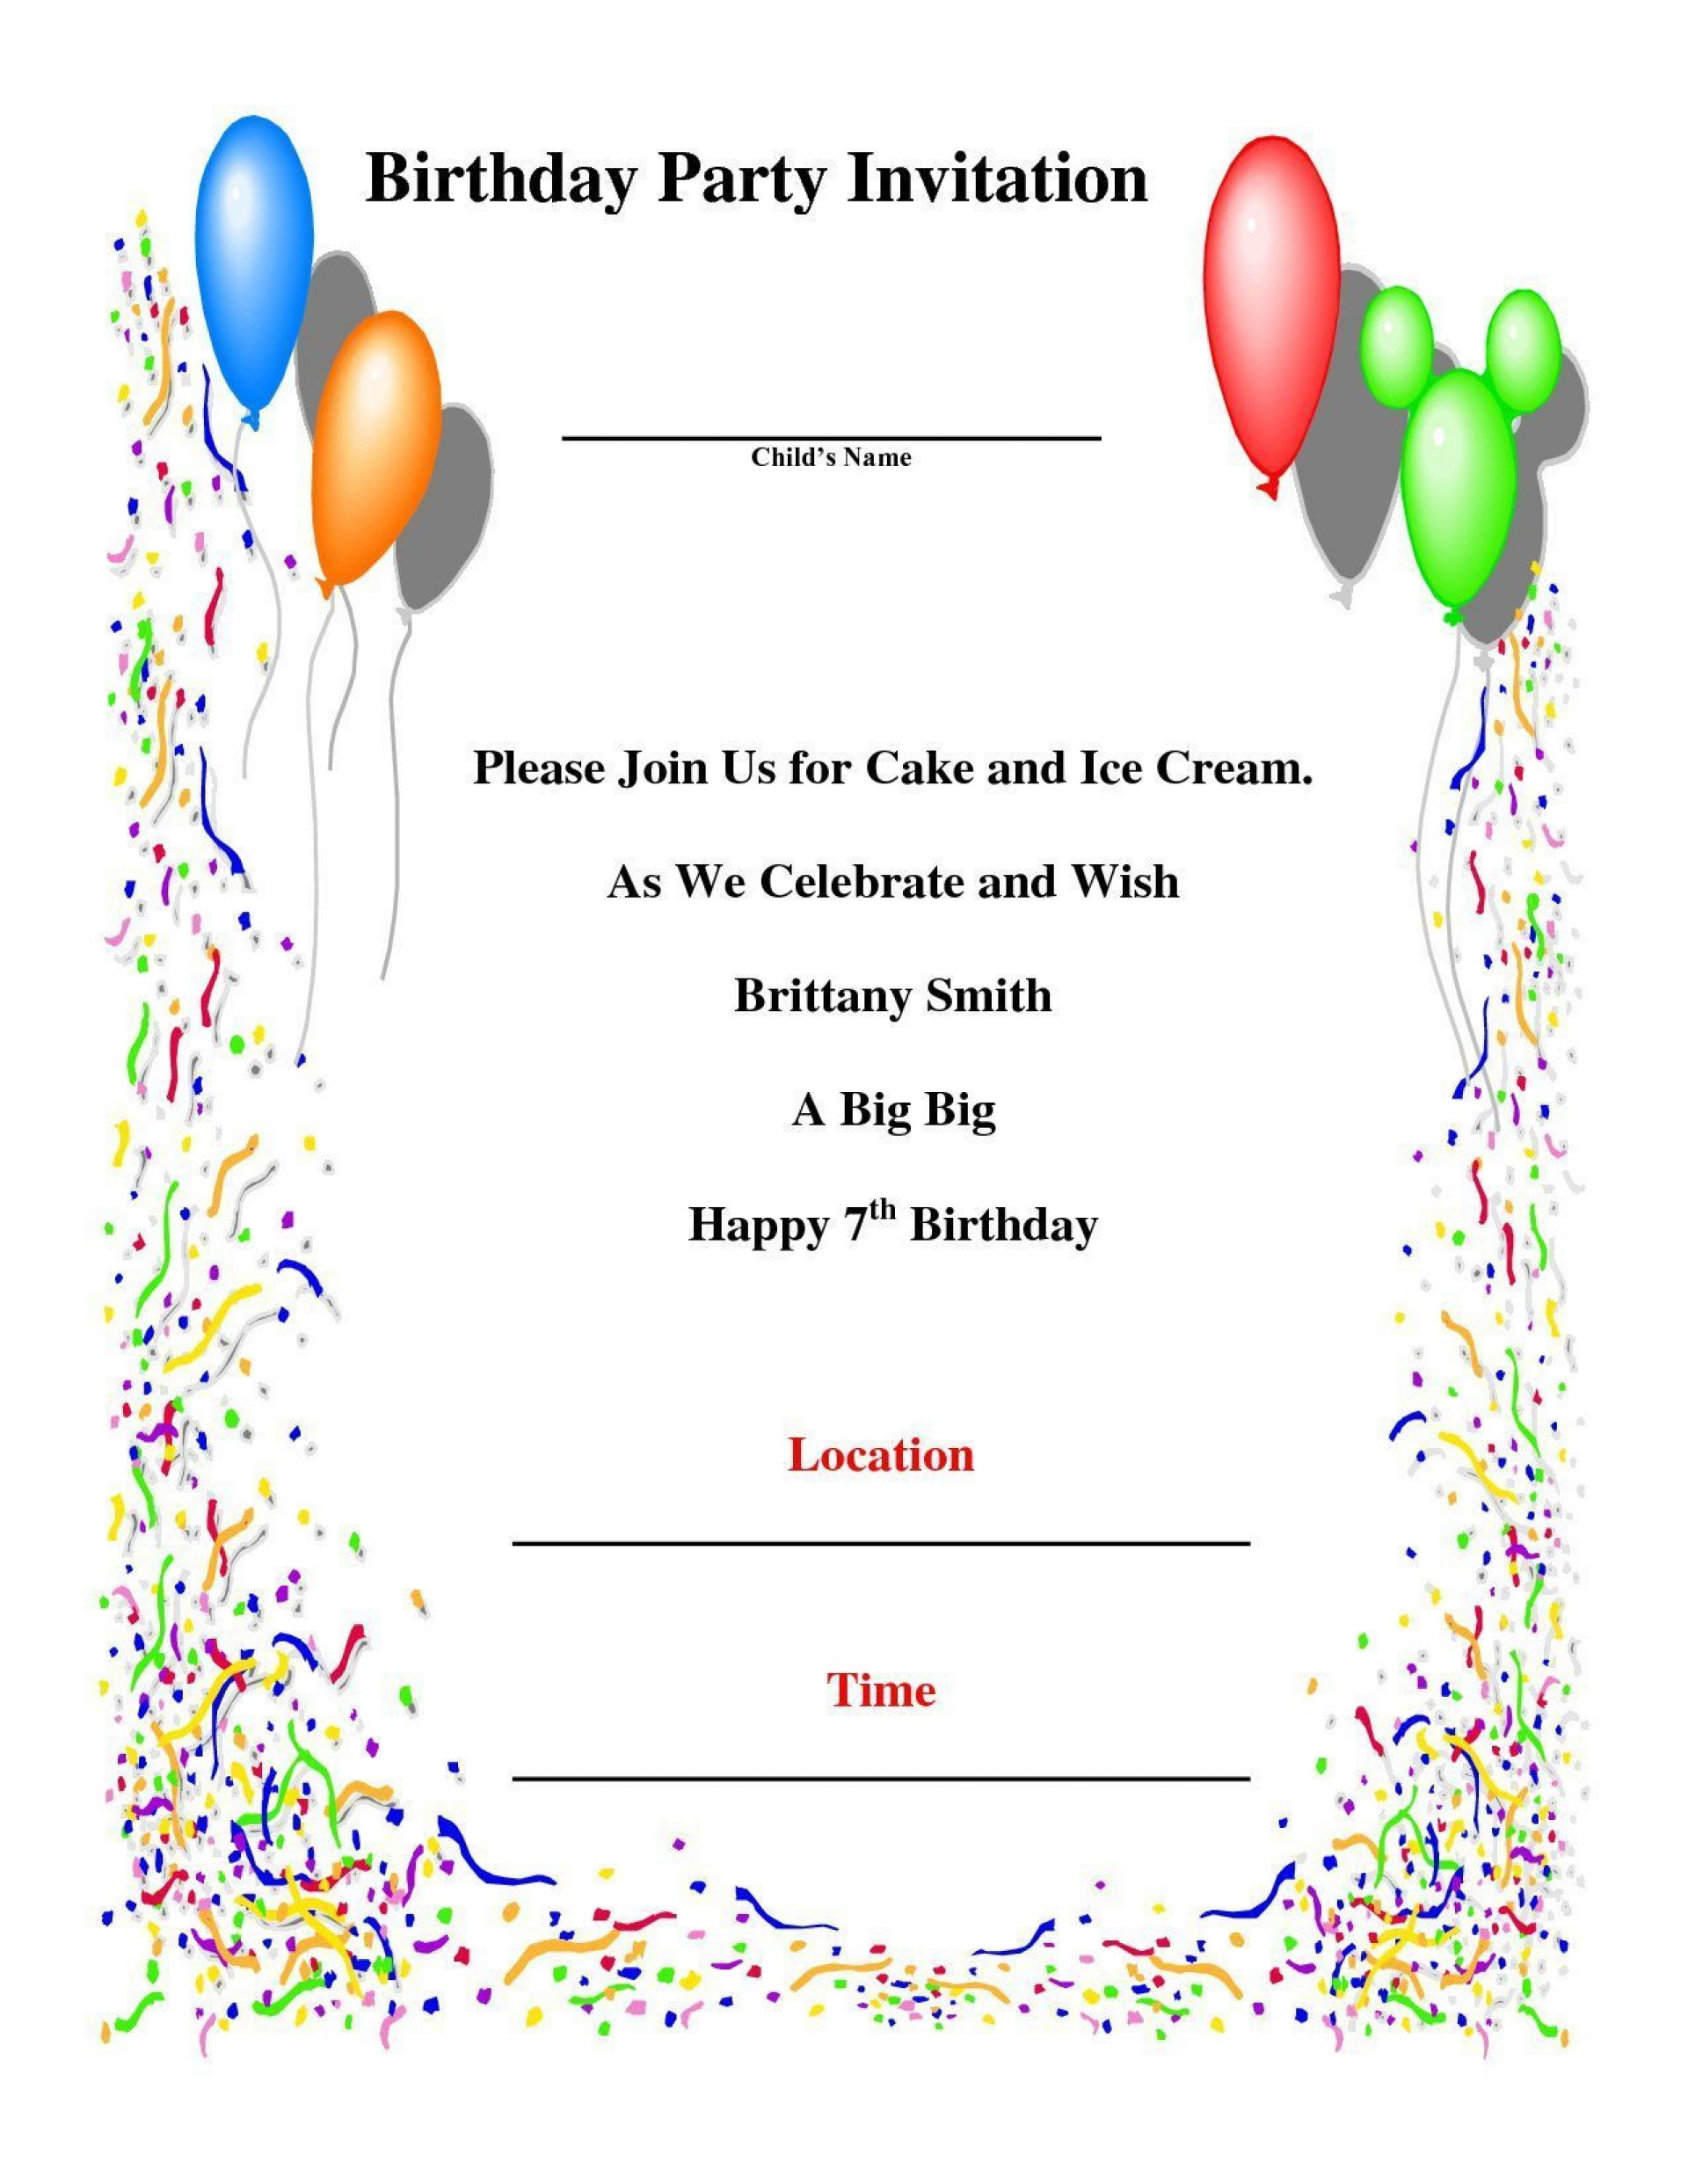 006 Magnificent Birthday Party Invitation Template Word Free High Resolution  Download Invite1920